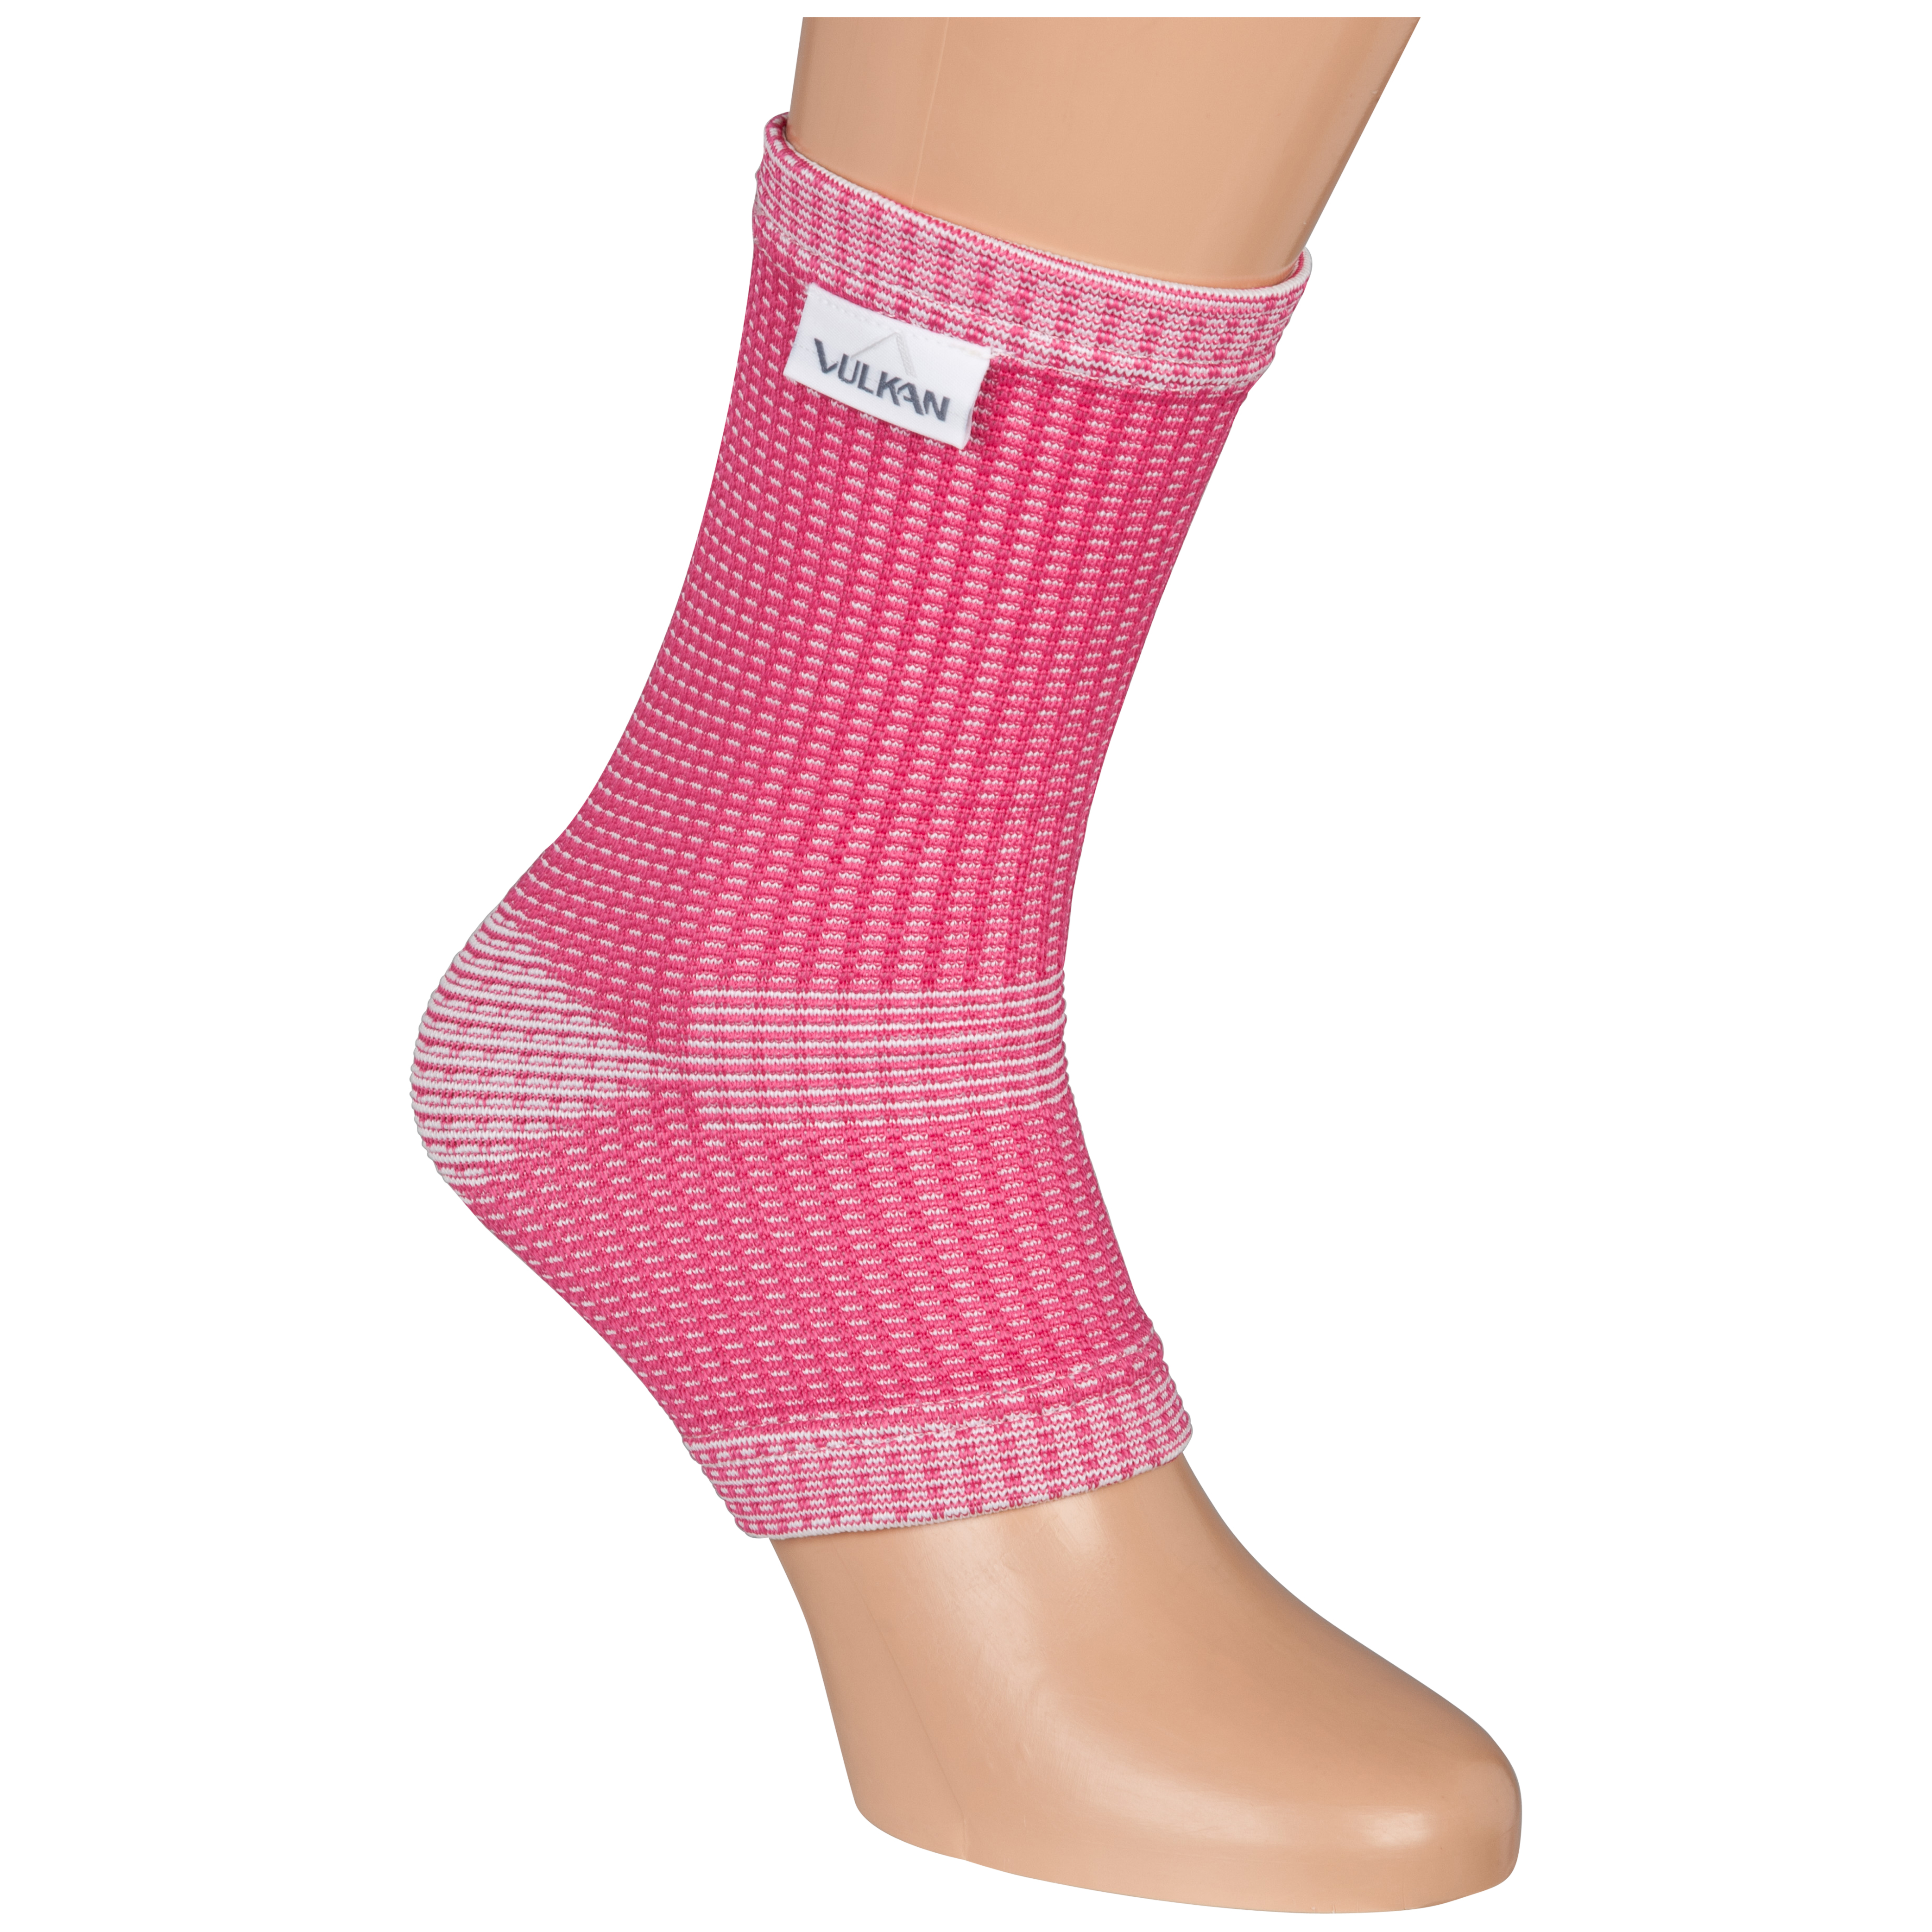 Vulkan New Pink Ankle Supports - Pink